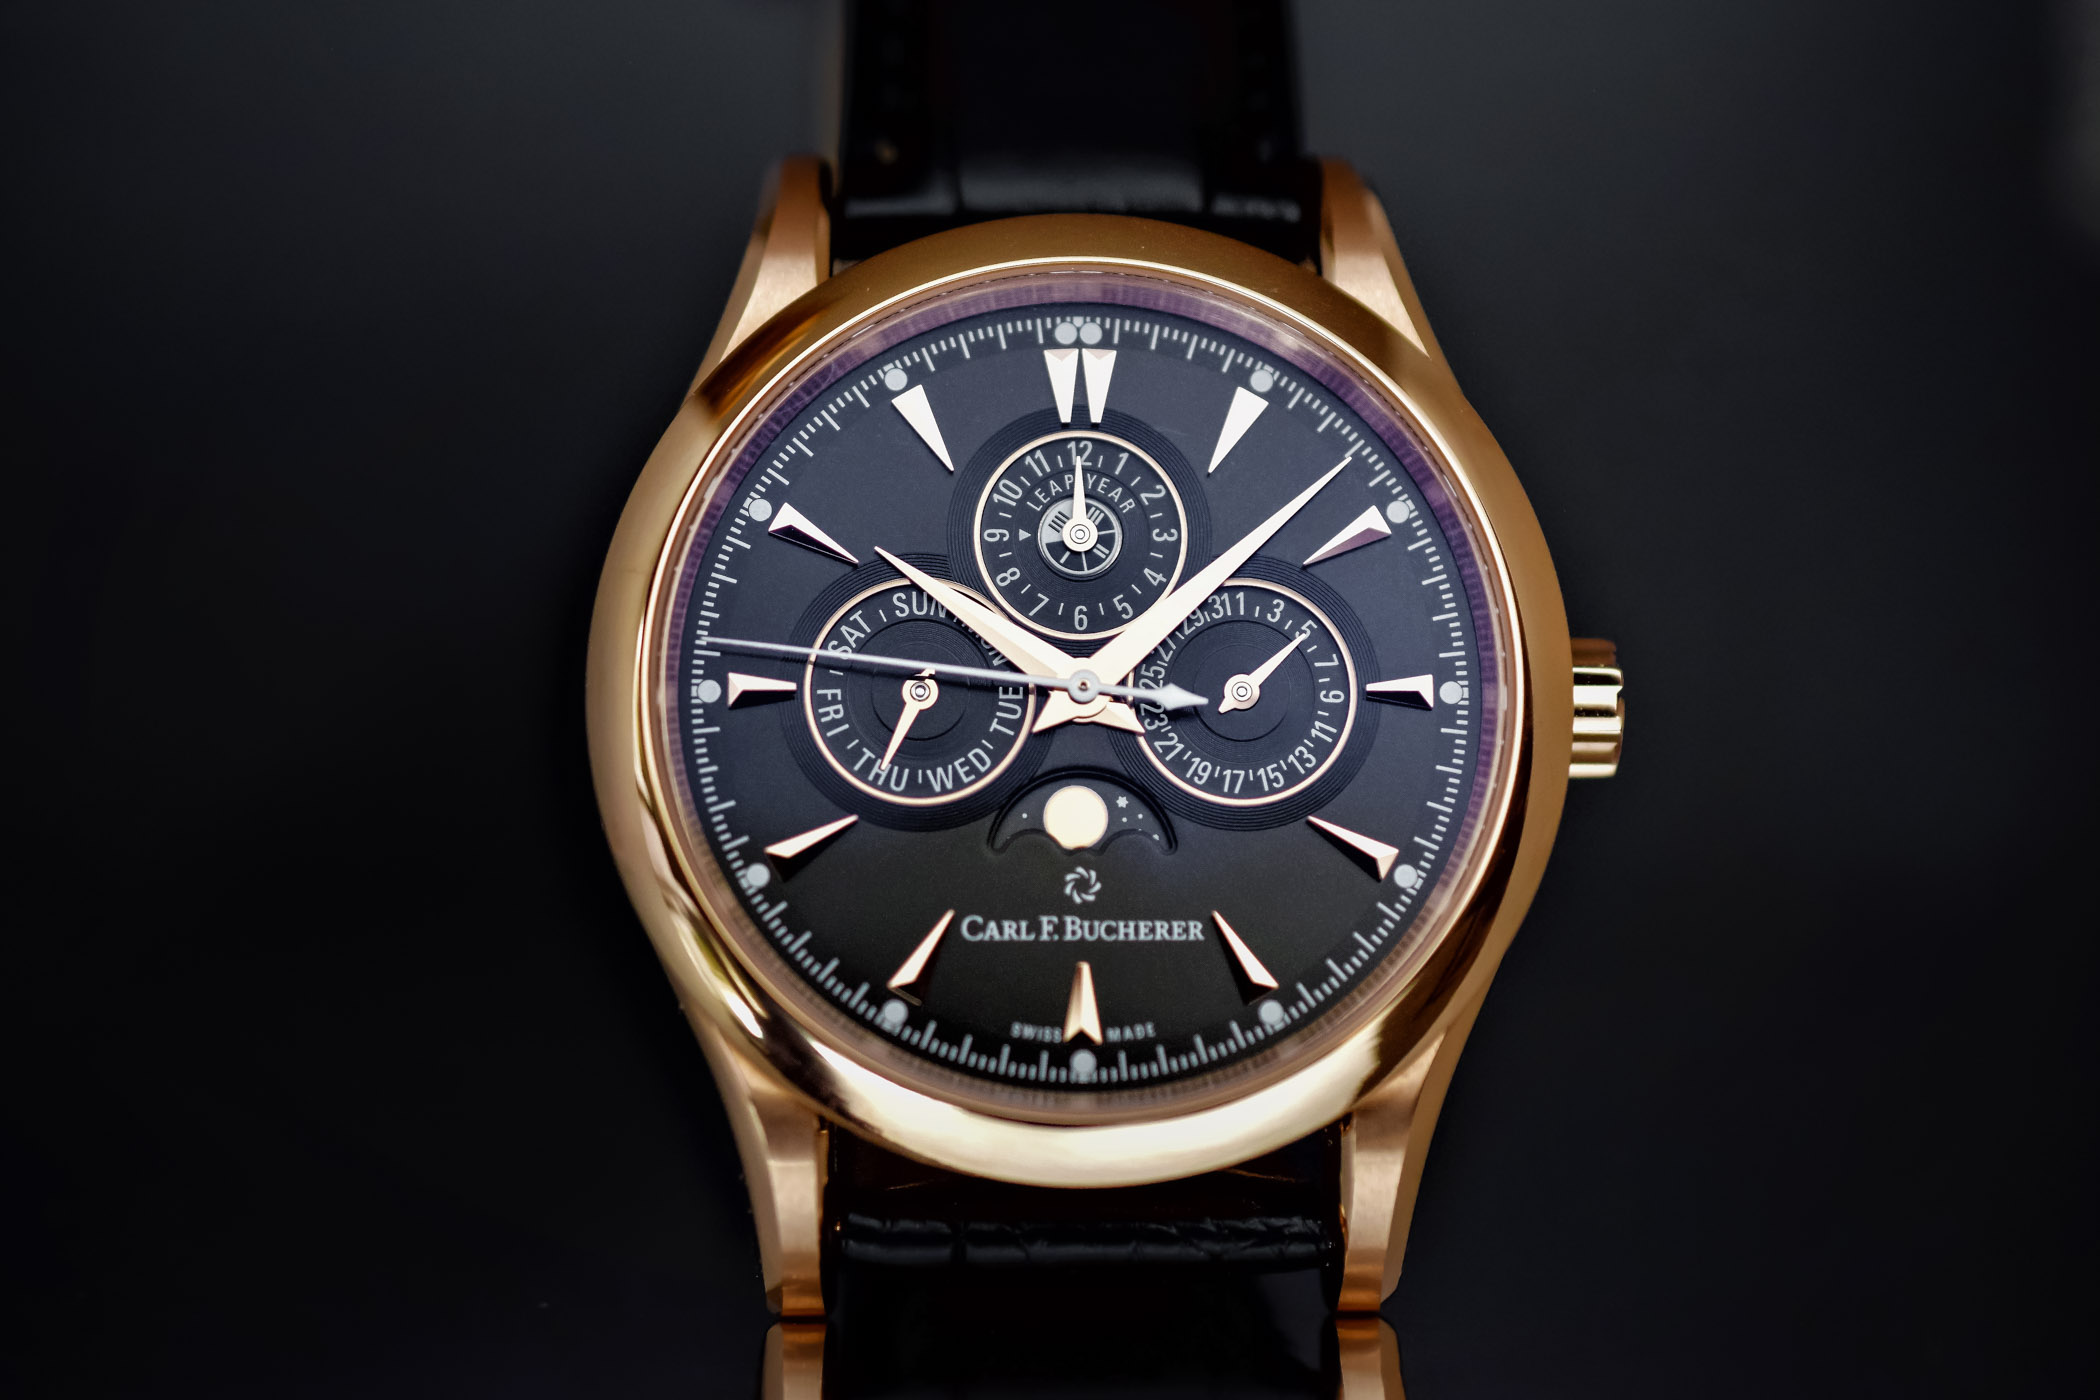 Carl F. Bucherer Manero Perpetual Limited Edition